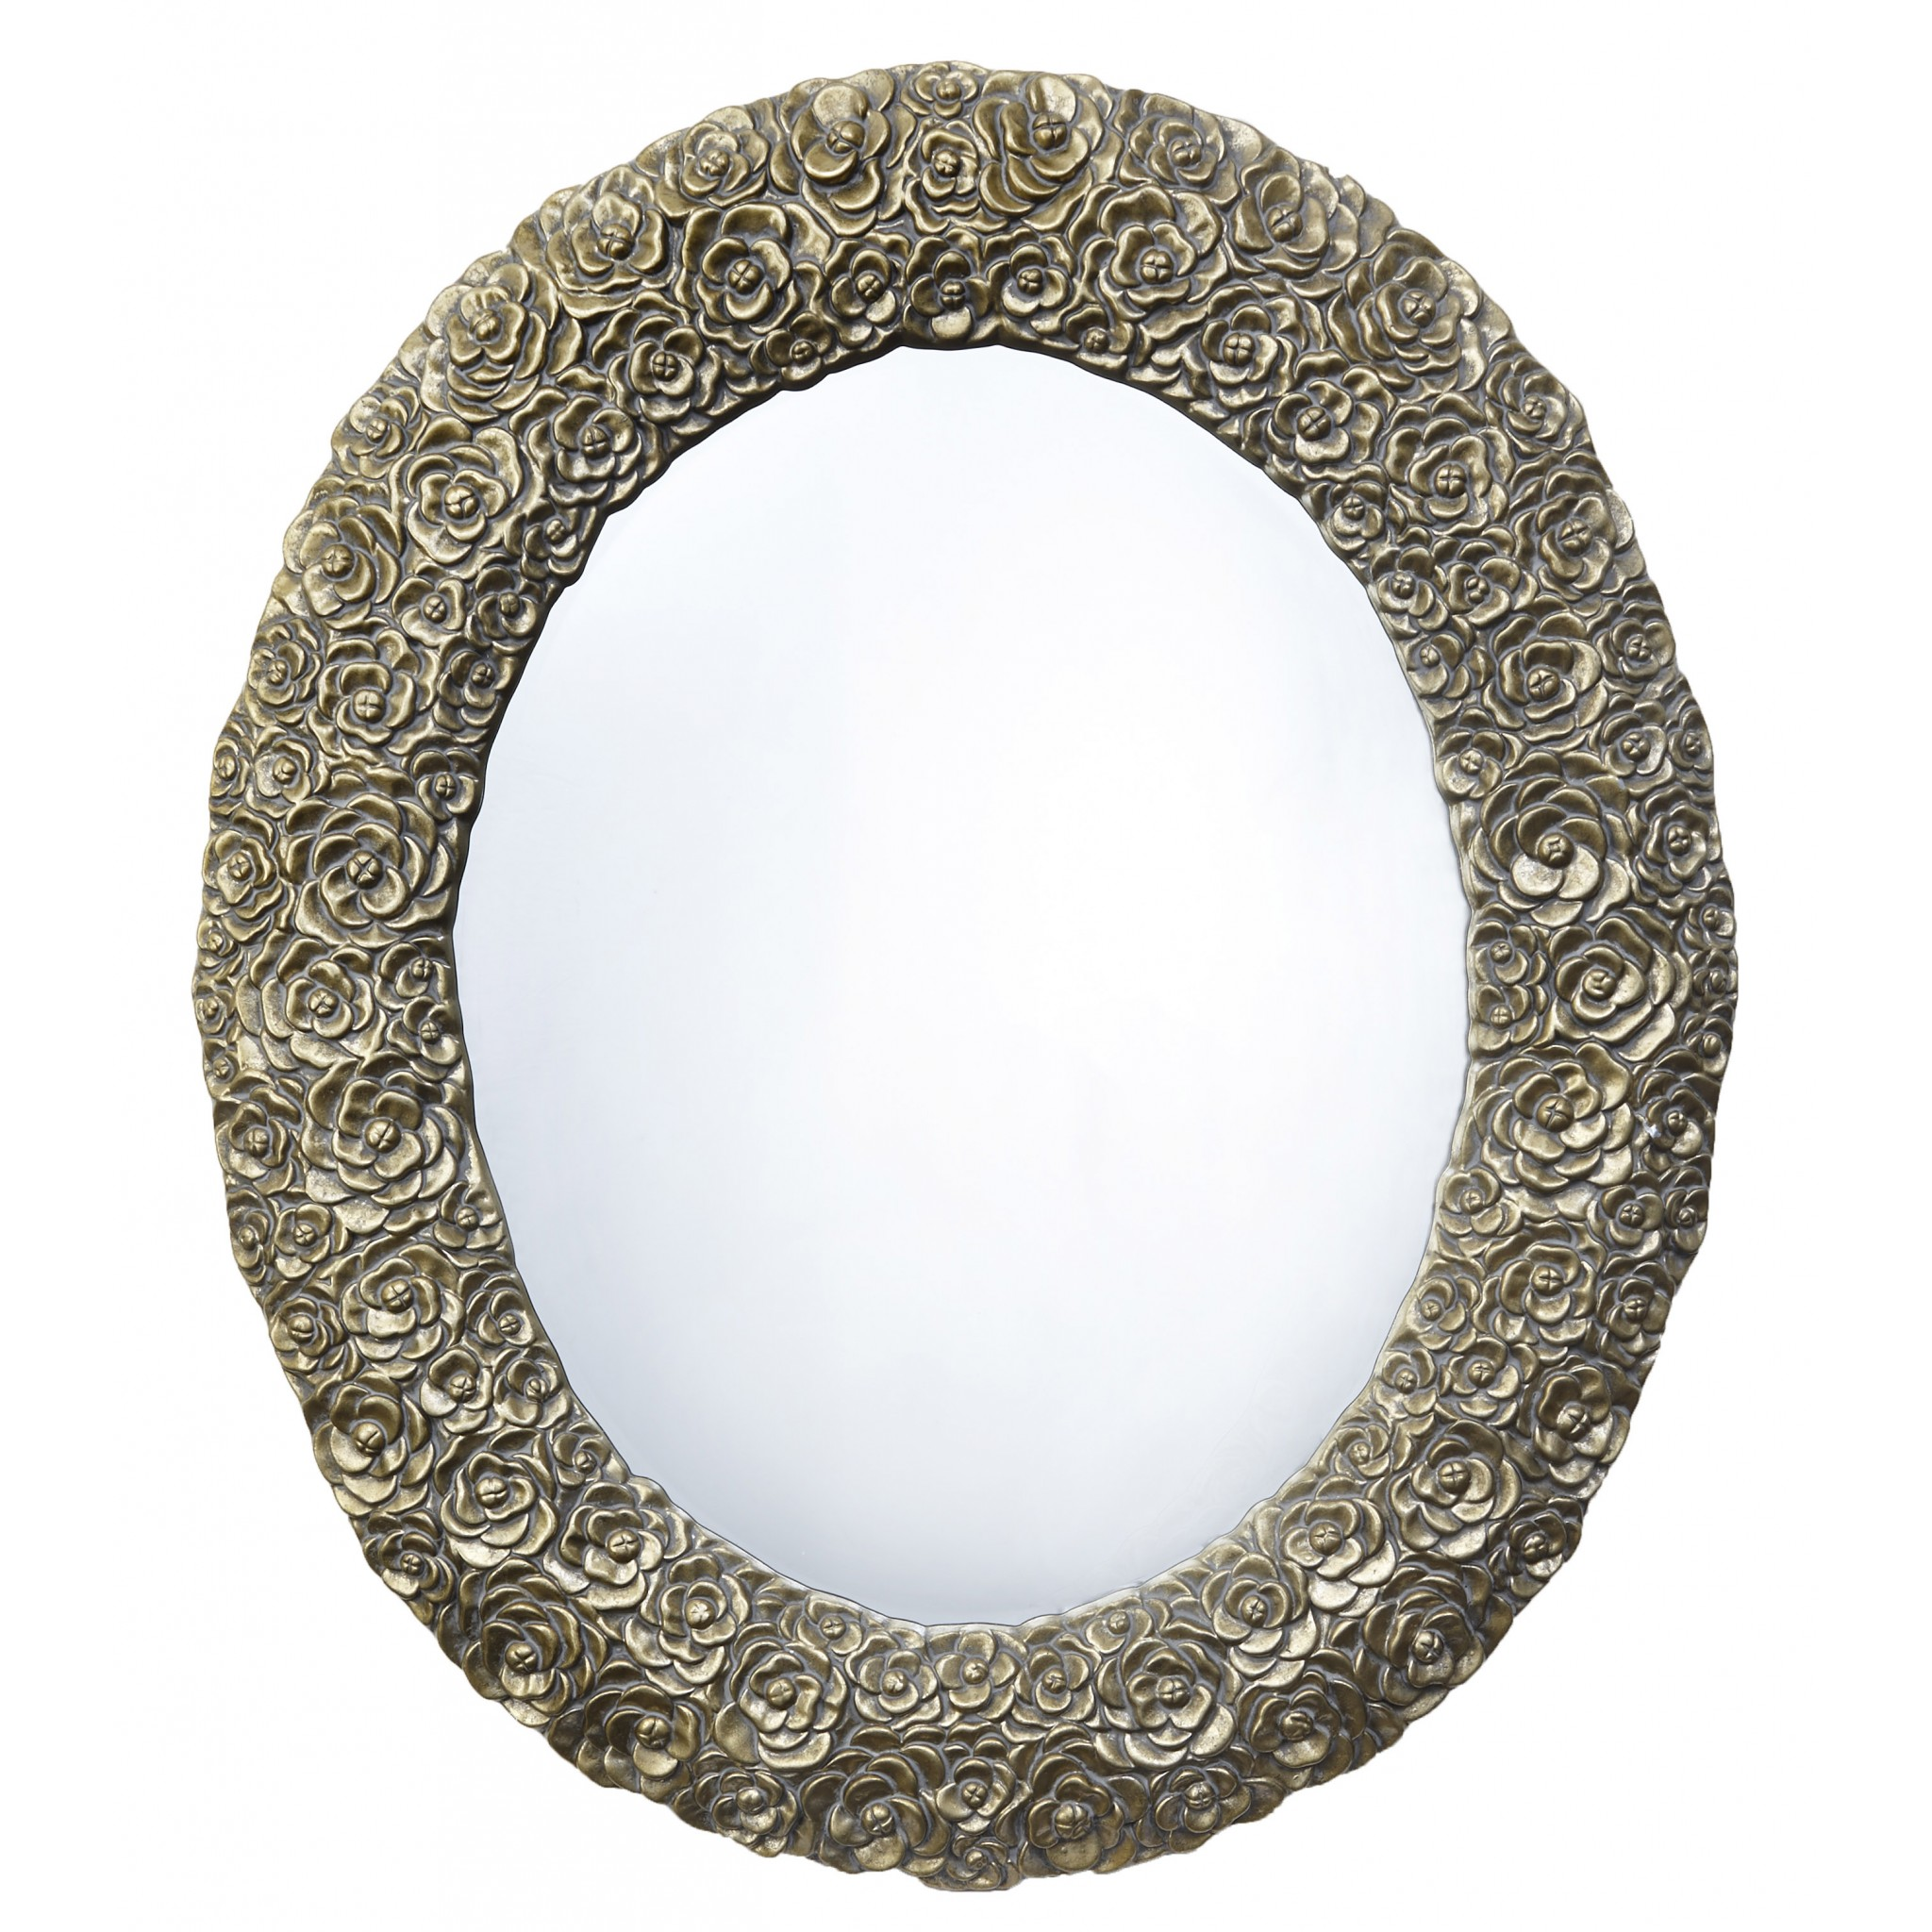 RV Astley Dana Light Antique Brass Wall Mirror